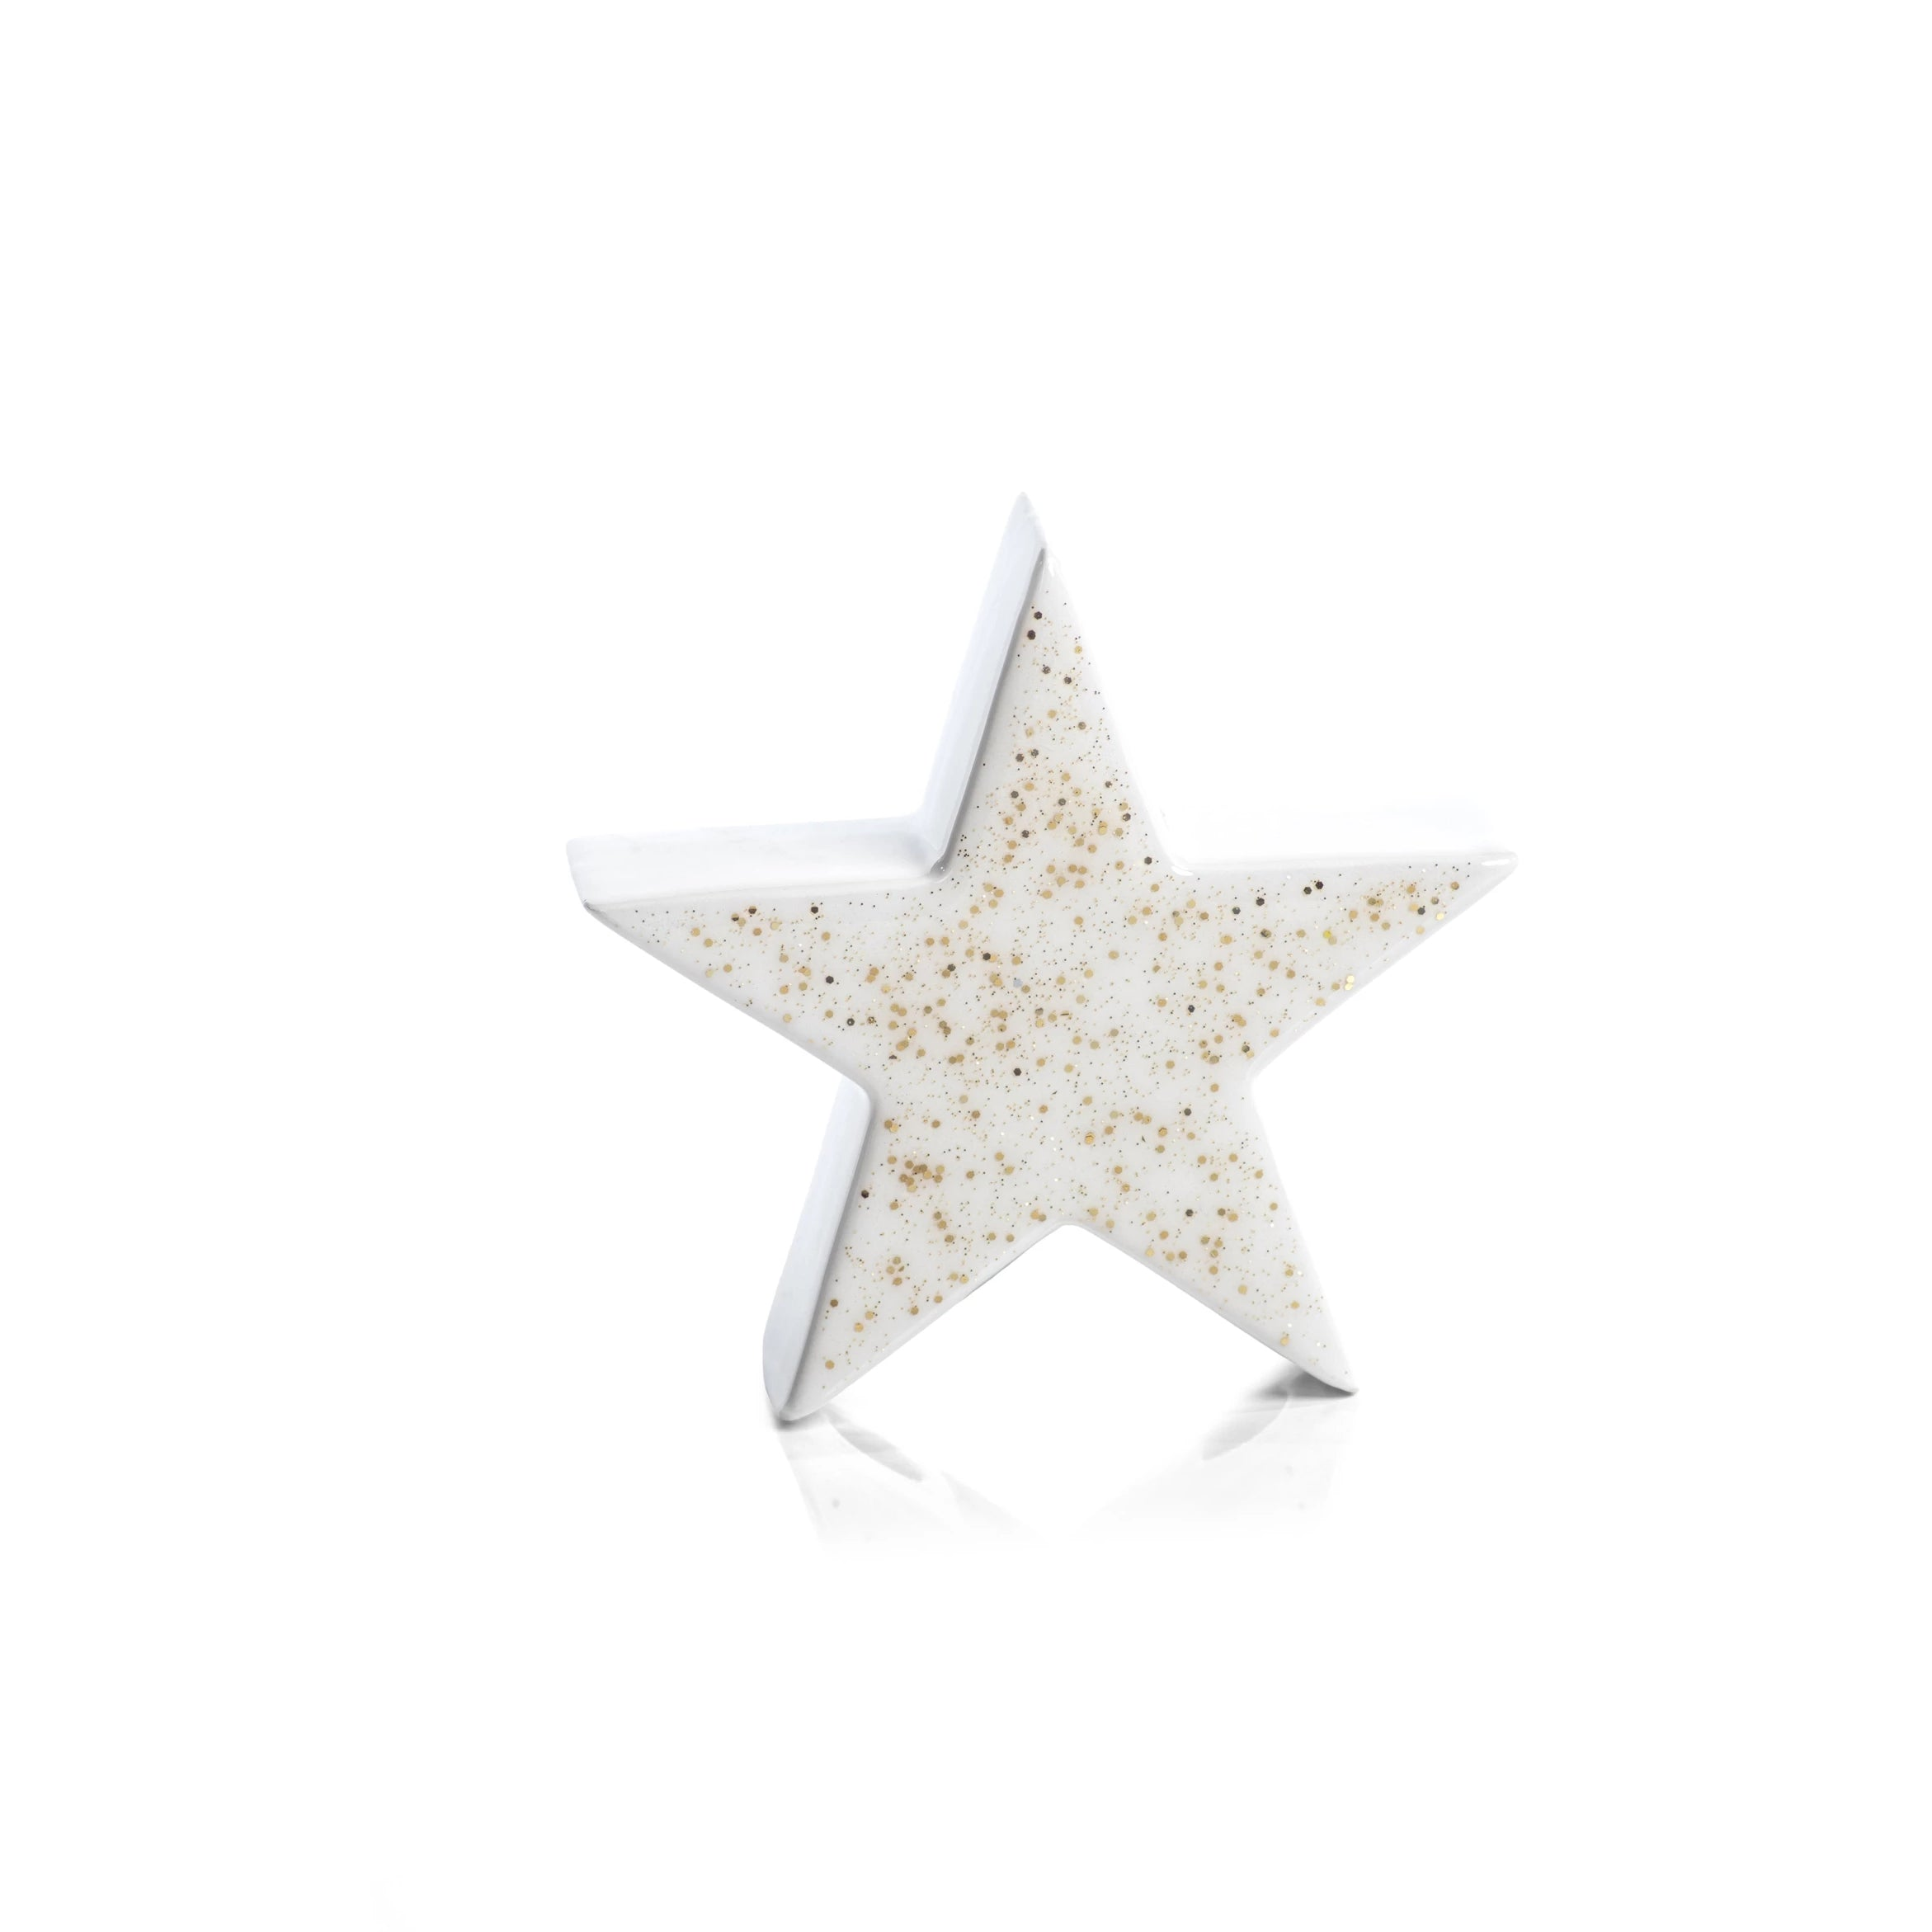 Speckled Decorative Star